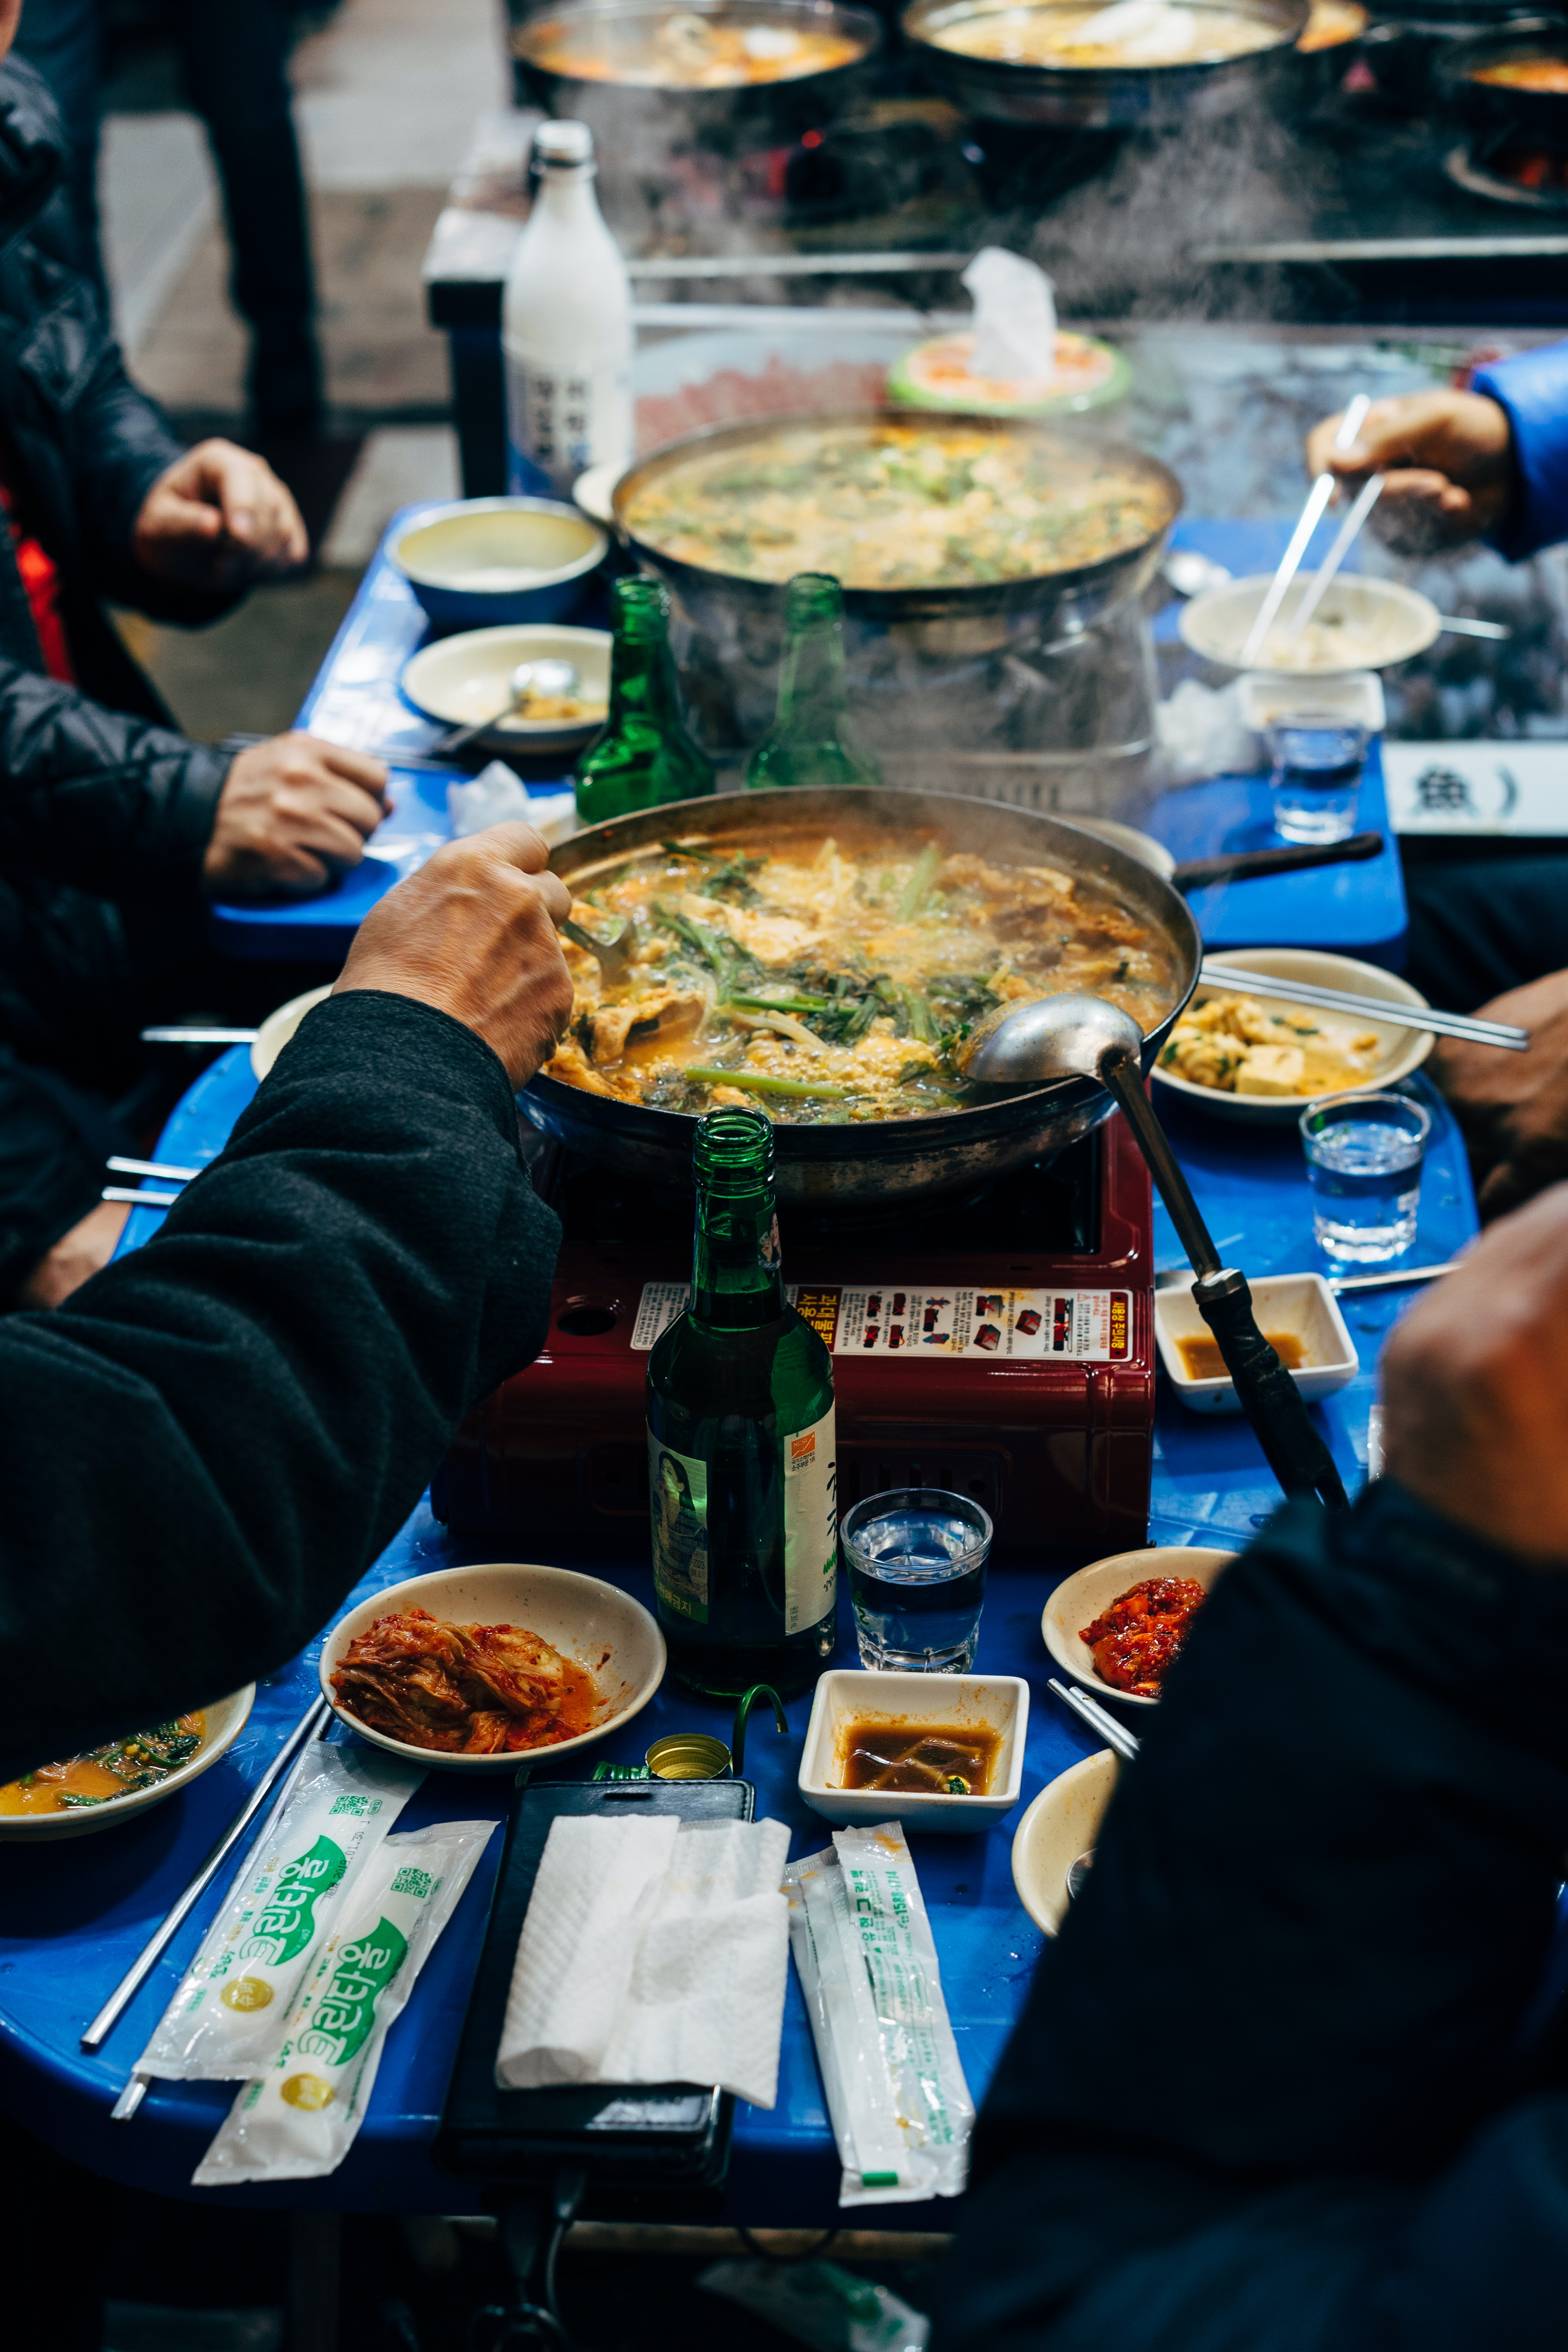 Foods in South Korea are mostly affordable, especially local food